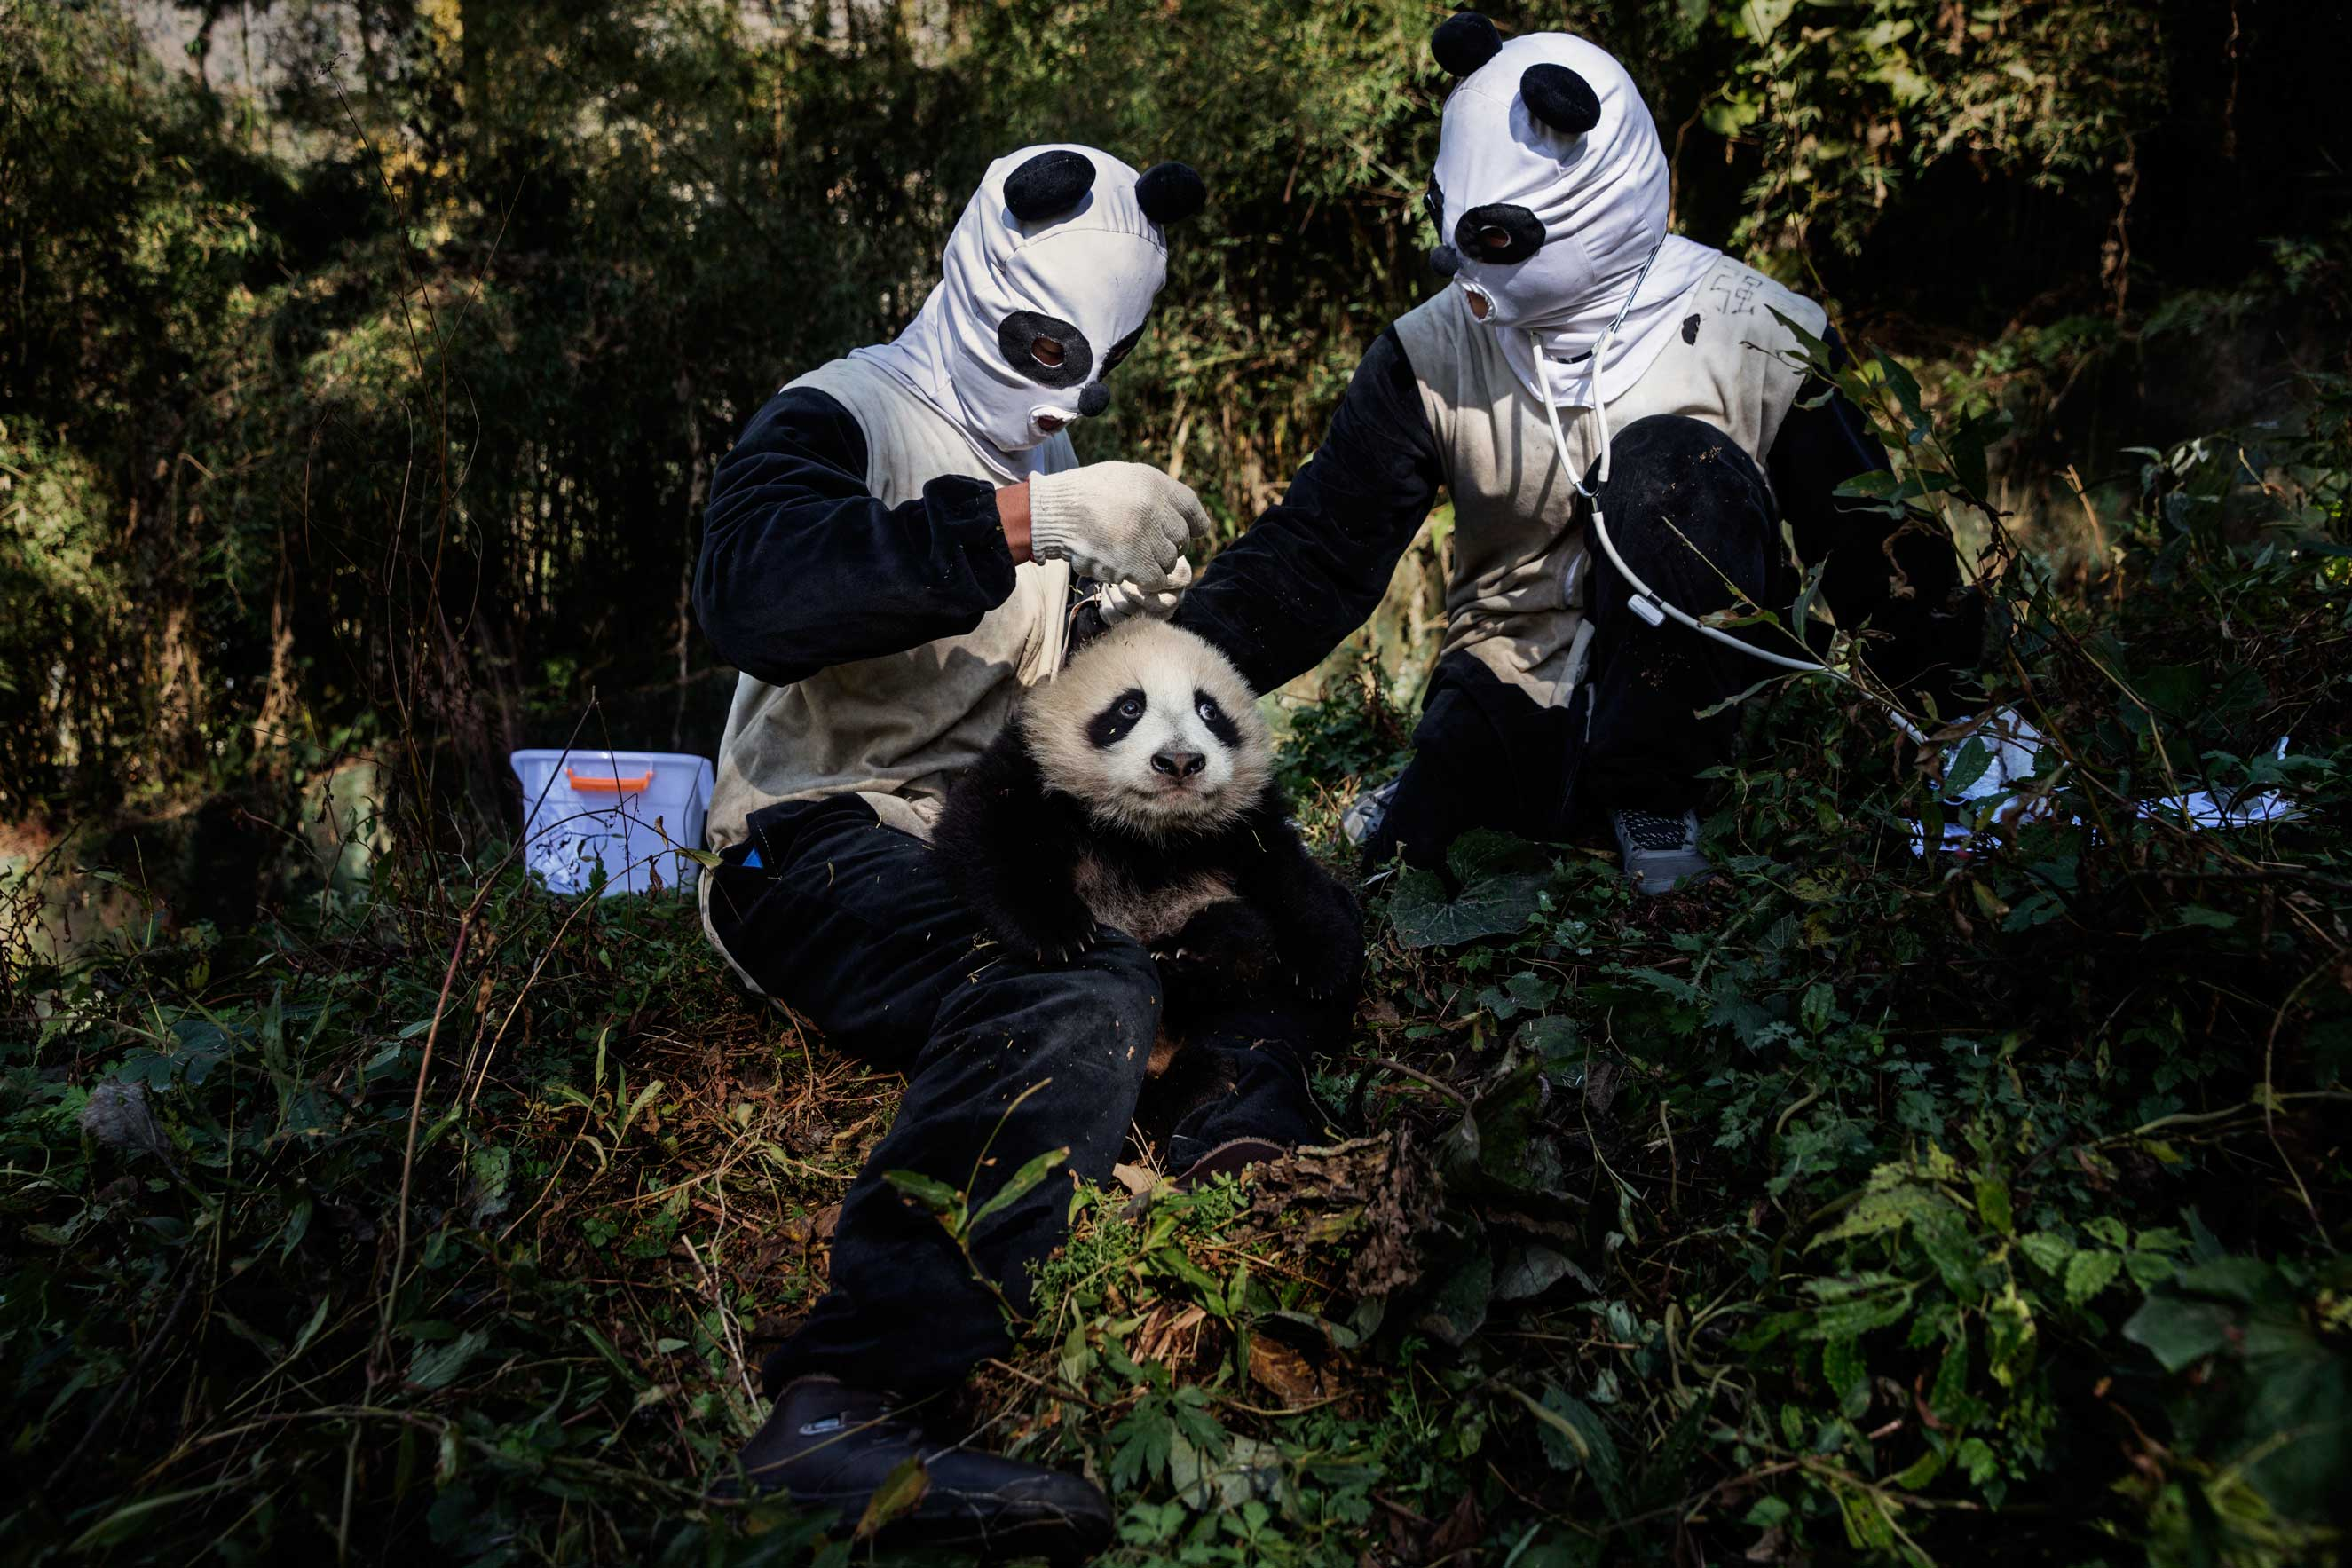 Researchers, dressed in panda costumes, check a 4 month old, female panda at the Hetaoping Research and Conservation Center, for the Giant Panda at the Wolong National Nature Reserve, Sichuan Province, China, Dec. 1, 2015.